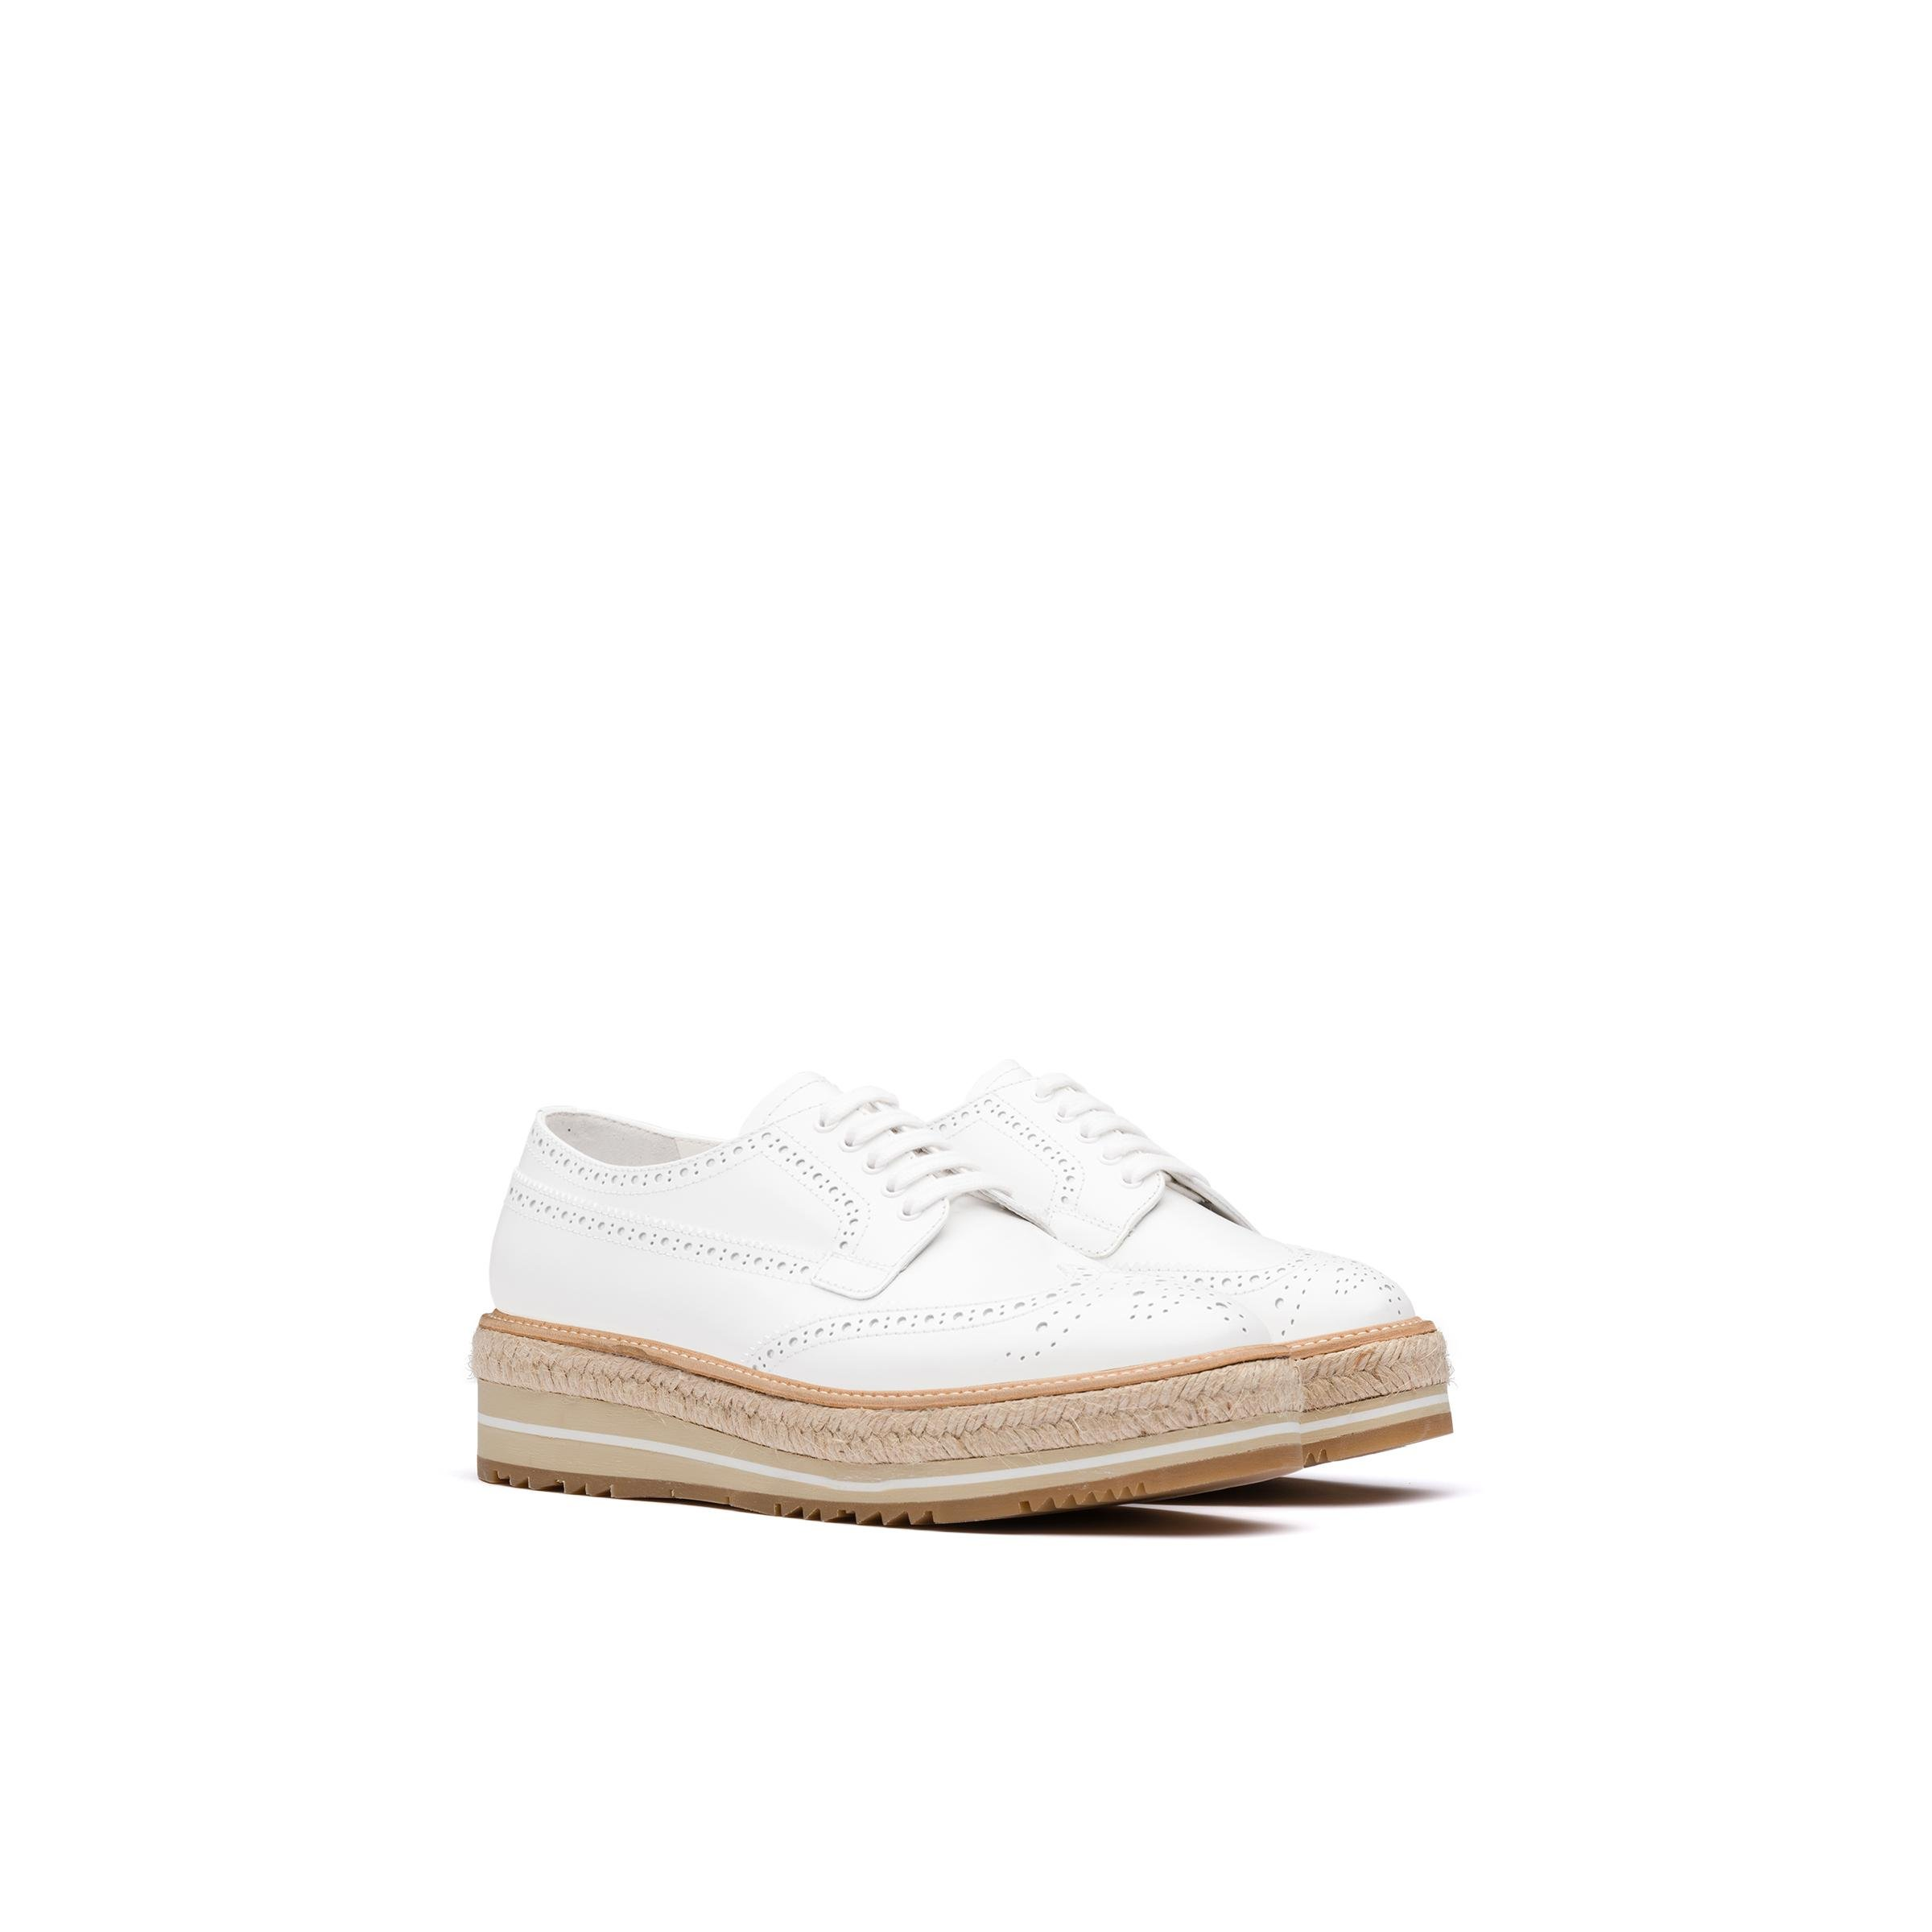 Microsole Brushed Leather Shoes Women White